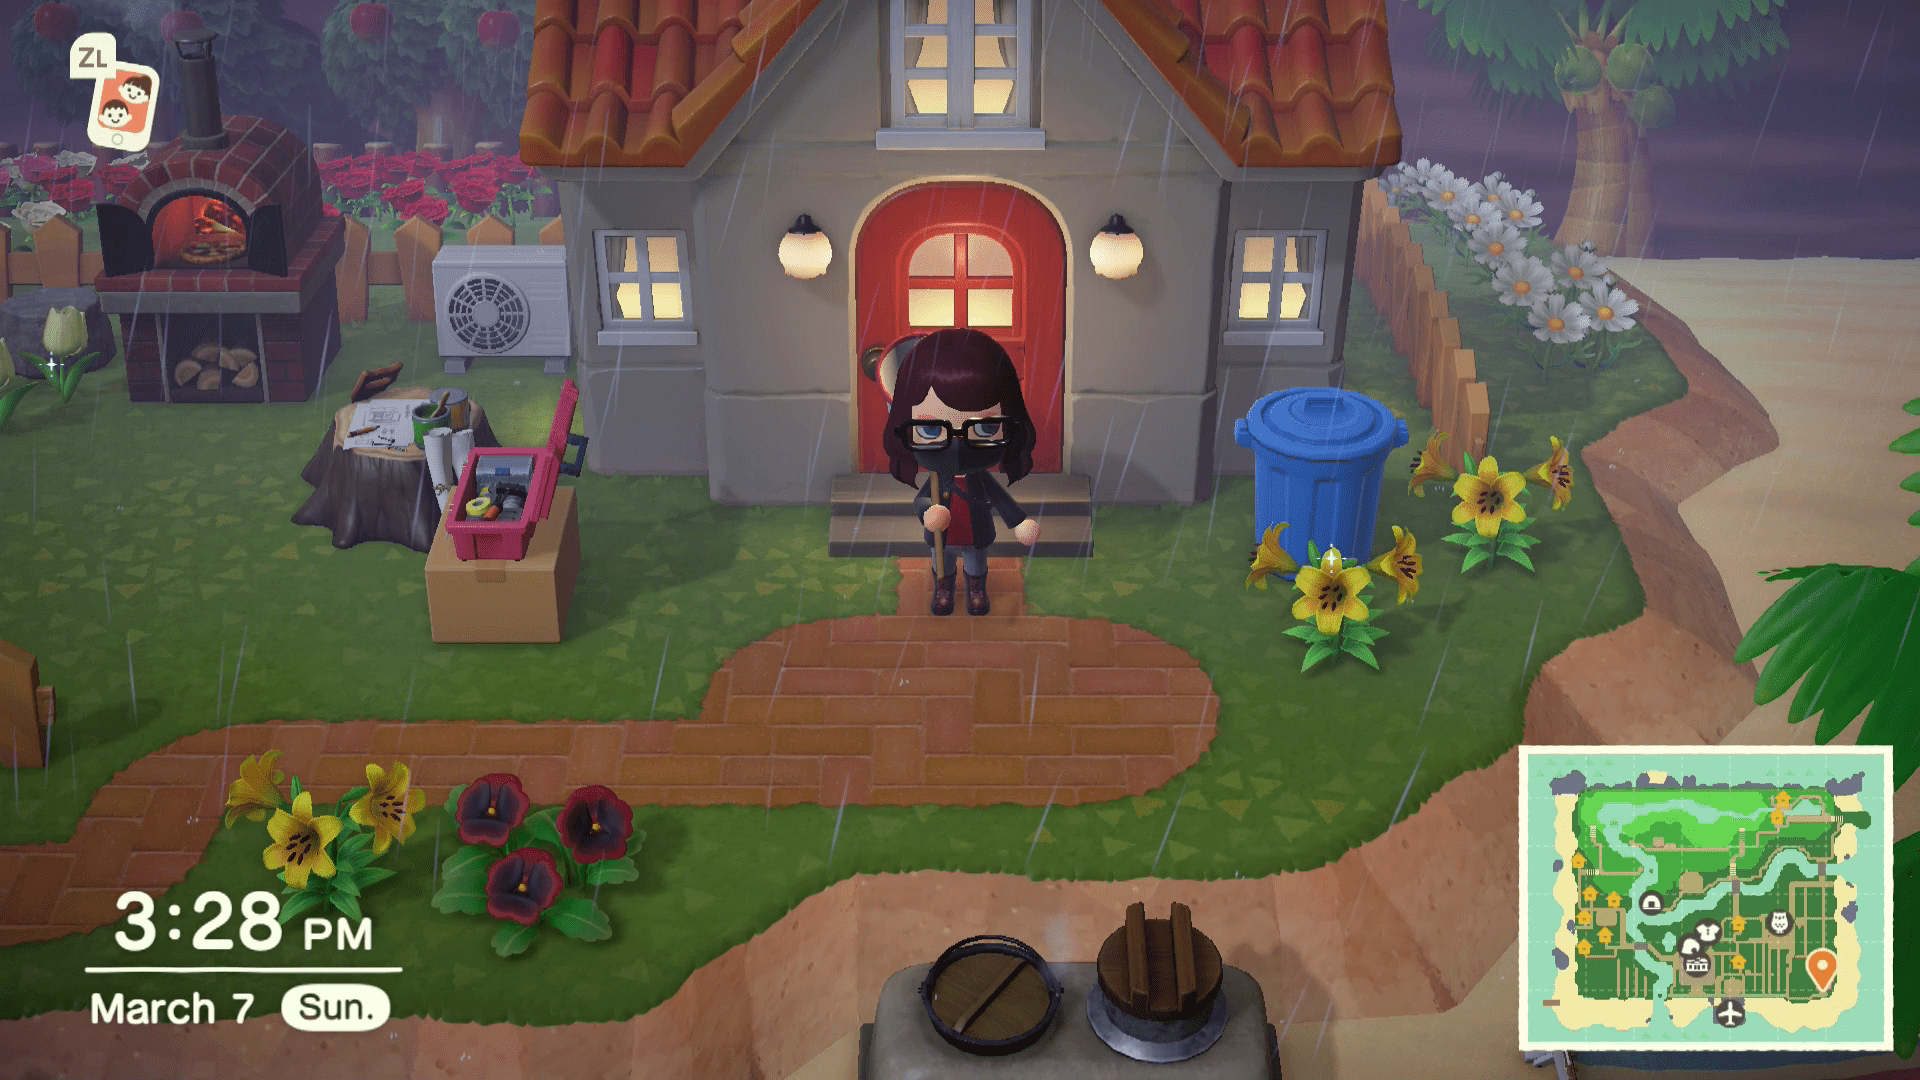 The mini map highlighted in Animal Crossing.